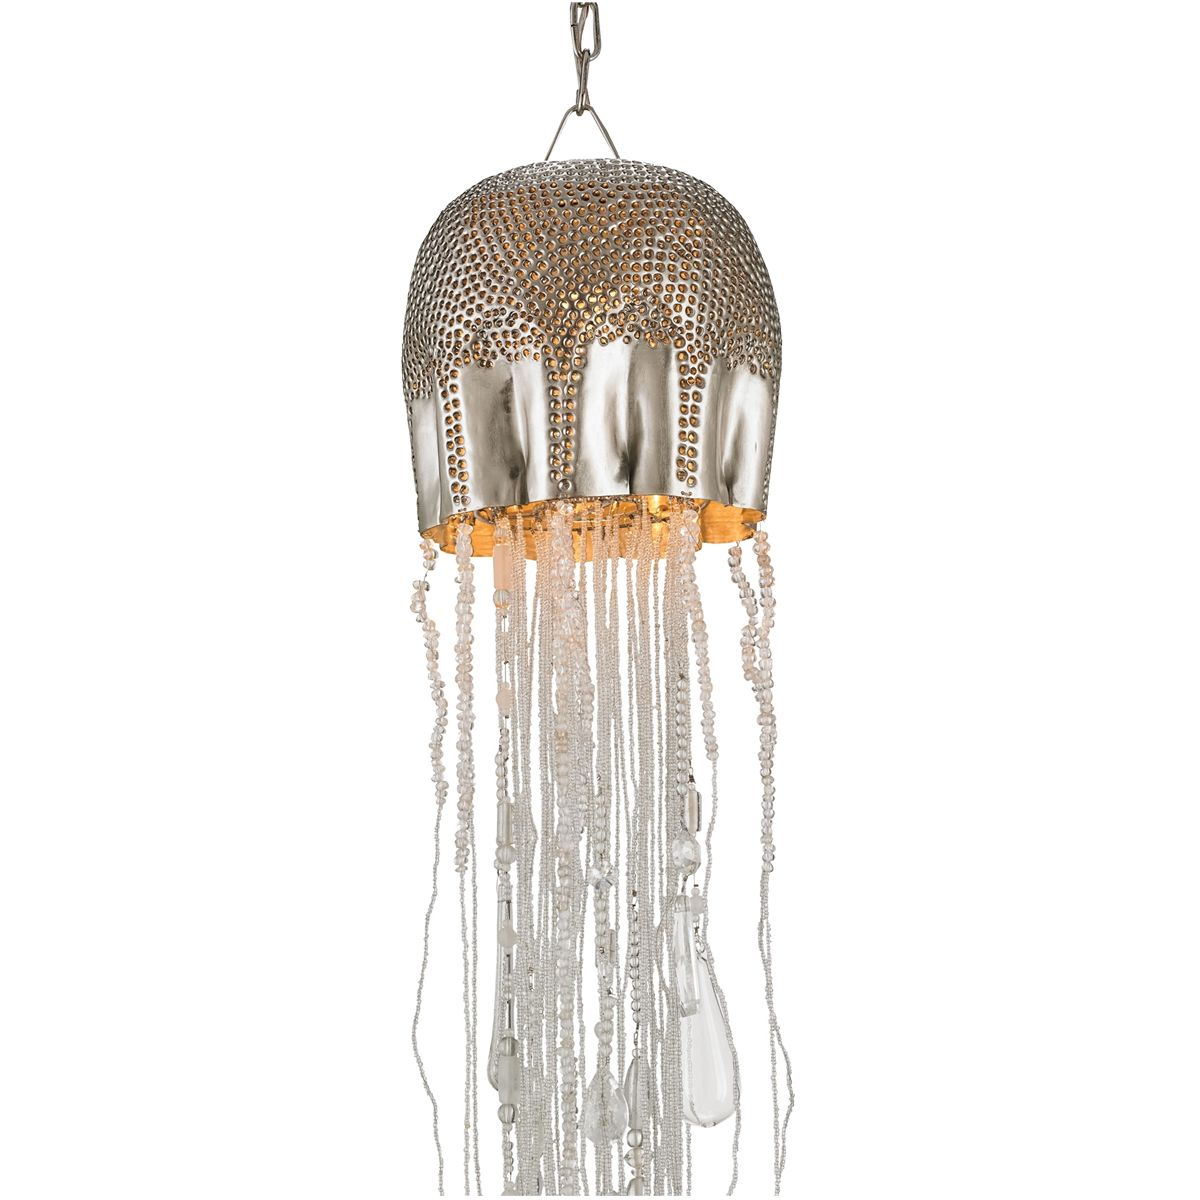 Nickle and brass jellyfish chandelier hand crafted 50 each nickle and brass jellyfish chandelier hand crafted arubaitofo Gallery